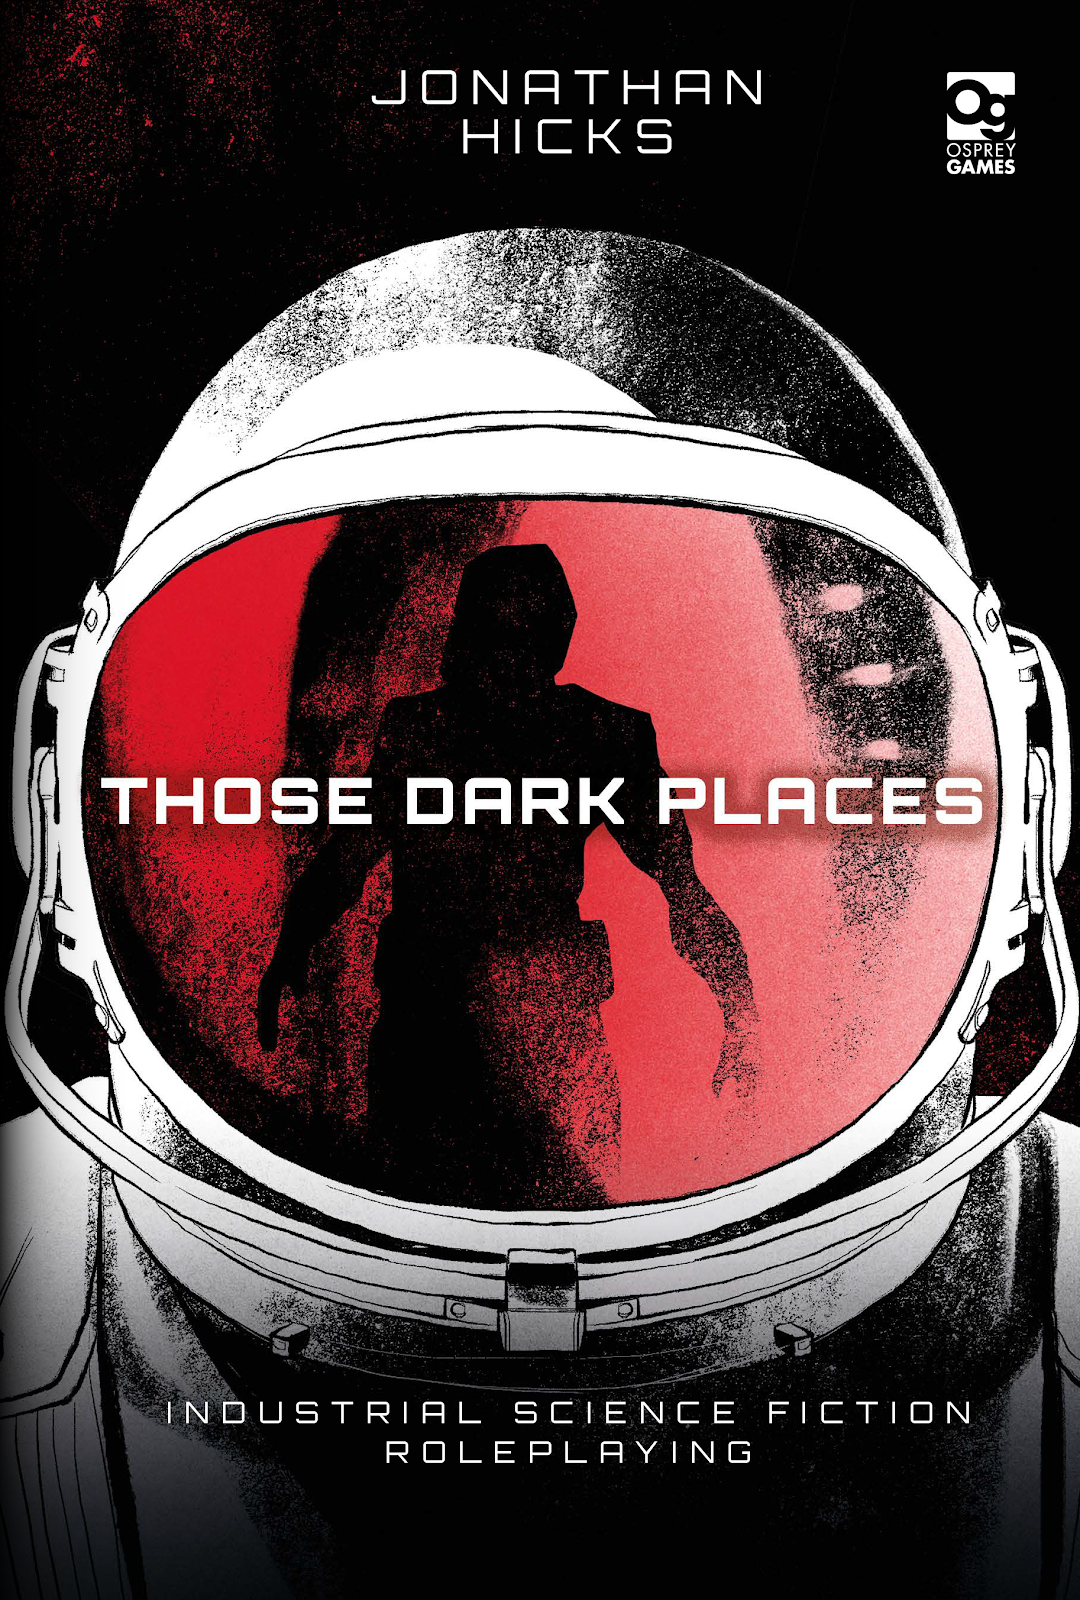 THOSE DARK PLACES